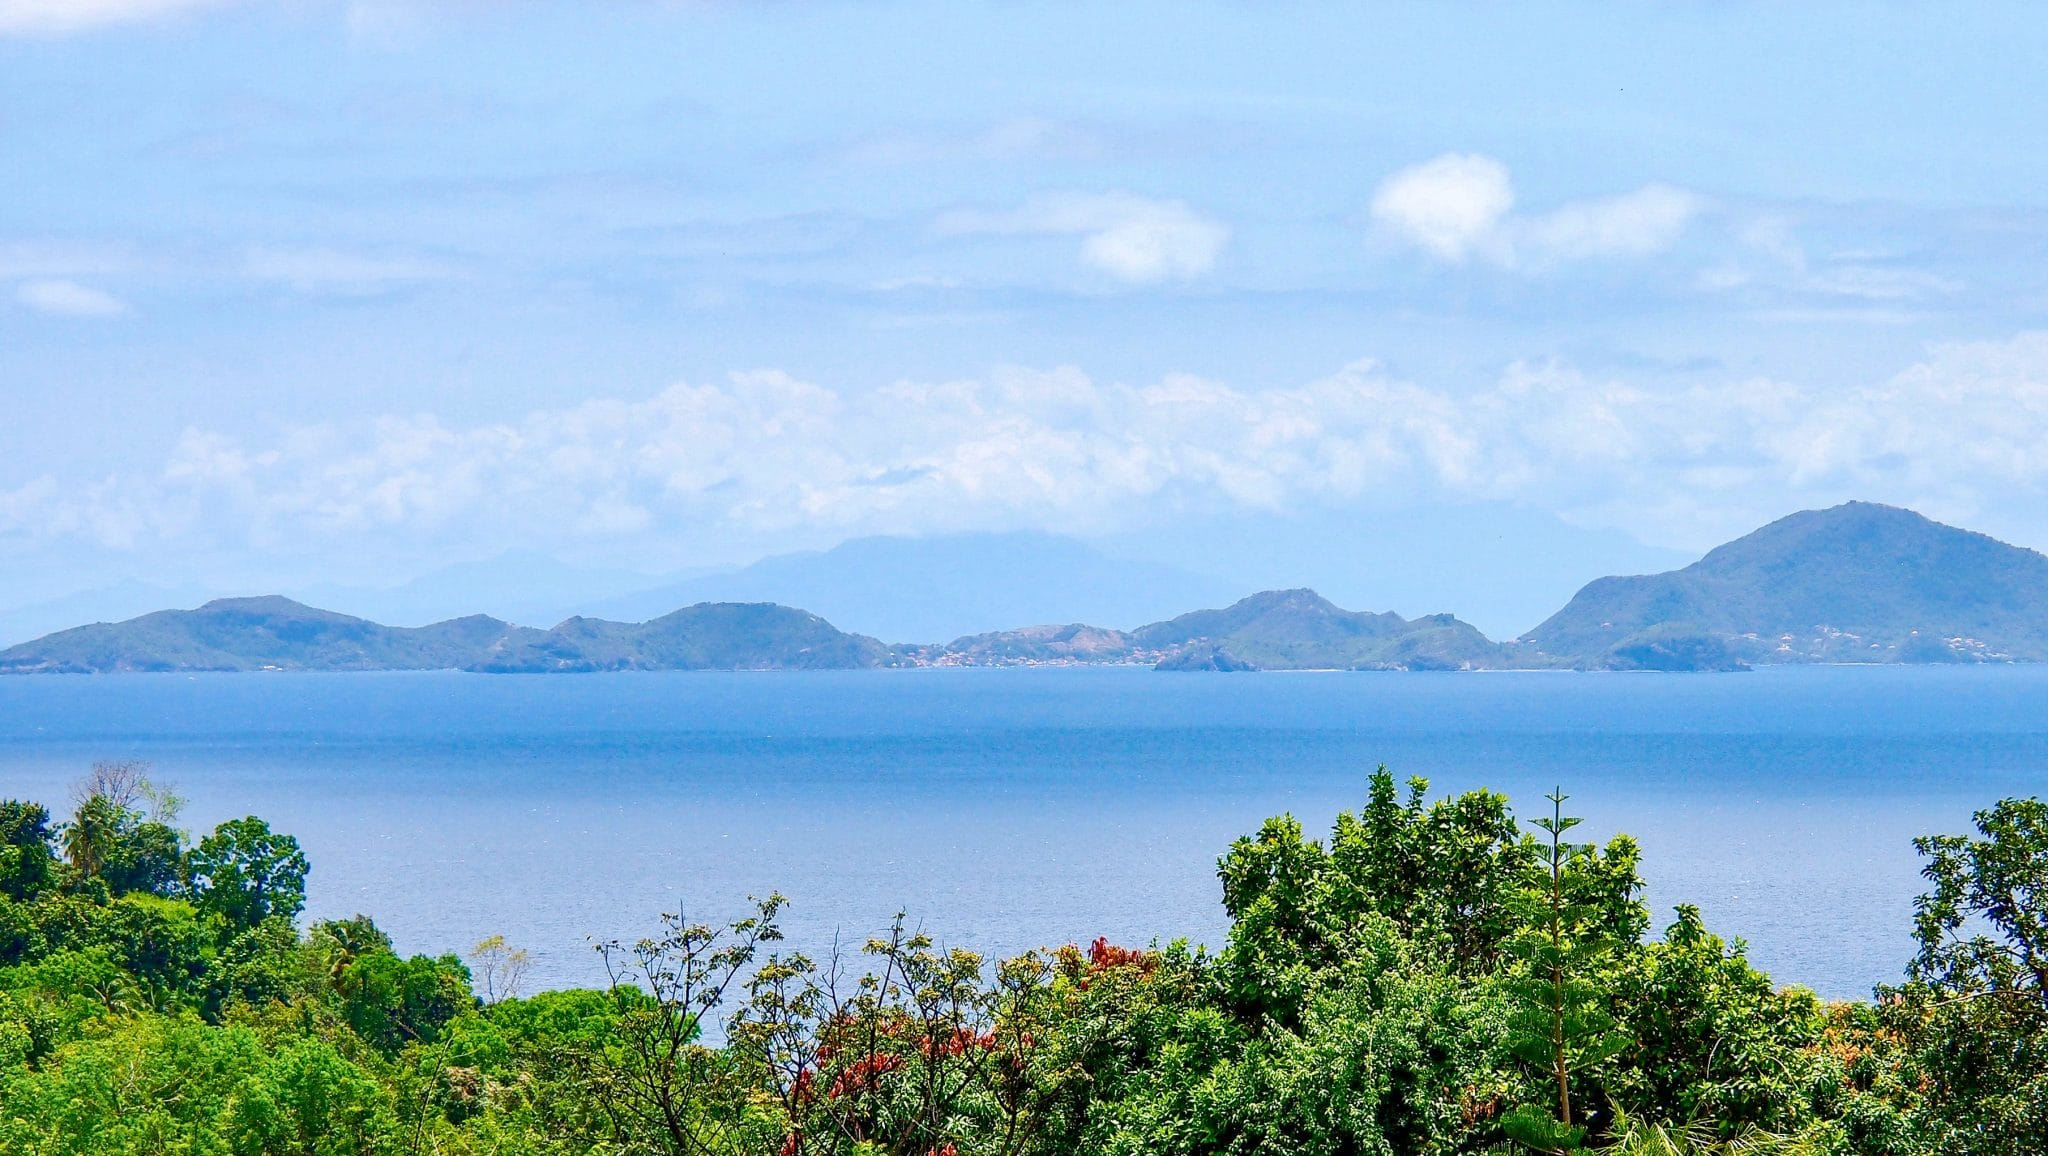 Sweet Sight of Les Saintes from Trois-Rivières, Guadeloupe